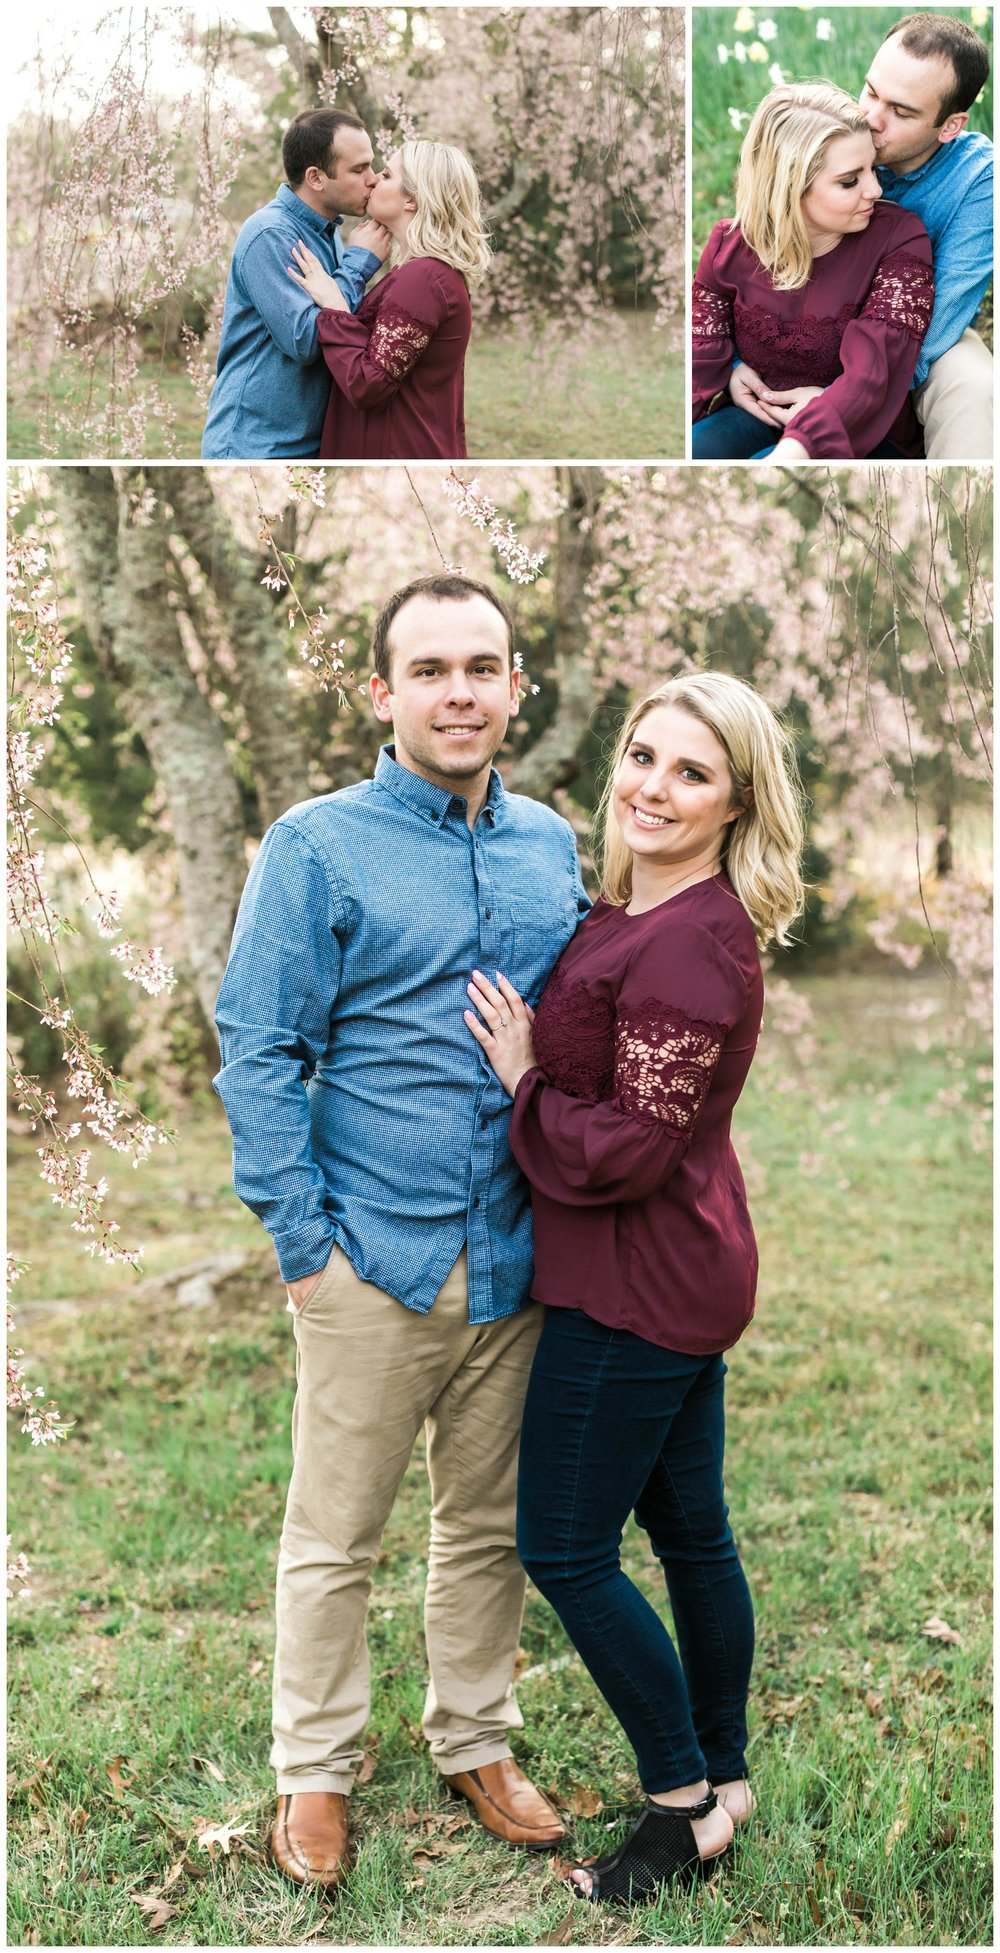 MagdalenaStudios_Engagement_April 2017_0013.jpg